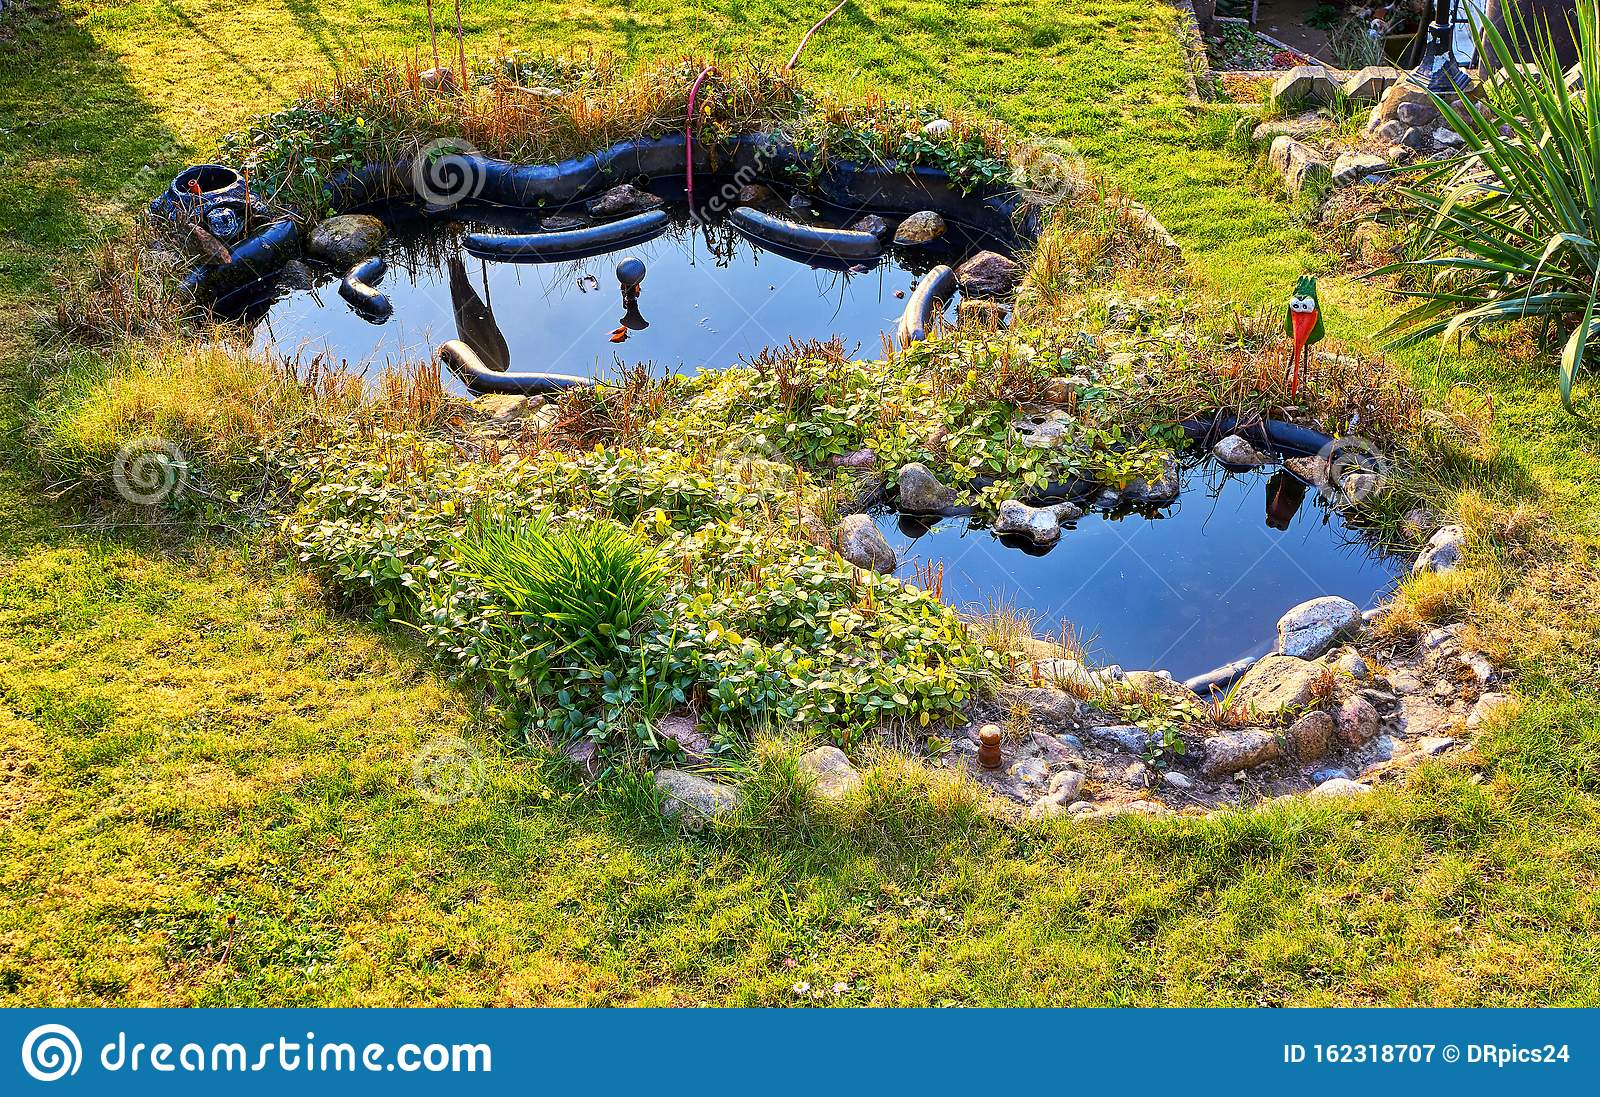 Pond In Landscape Design In A Small Garden As Nature Background Stock Image Image Of Grass Tranquil 162318707